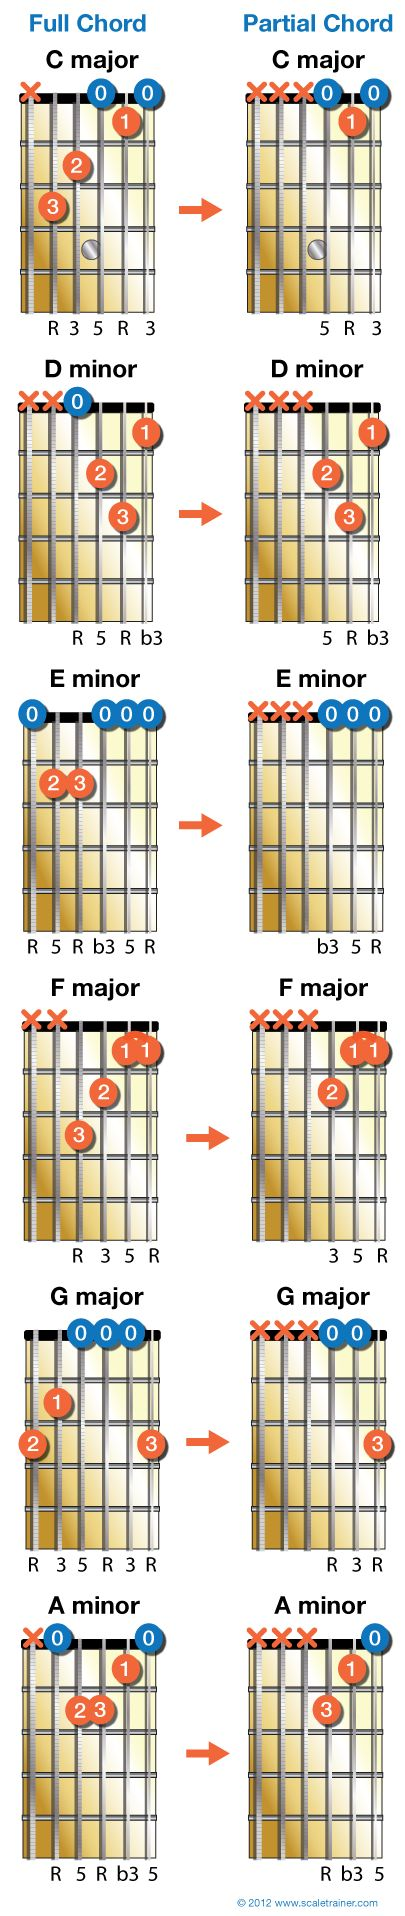 What are some easy blues songs to learn on the guitar? - Quora